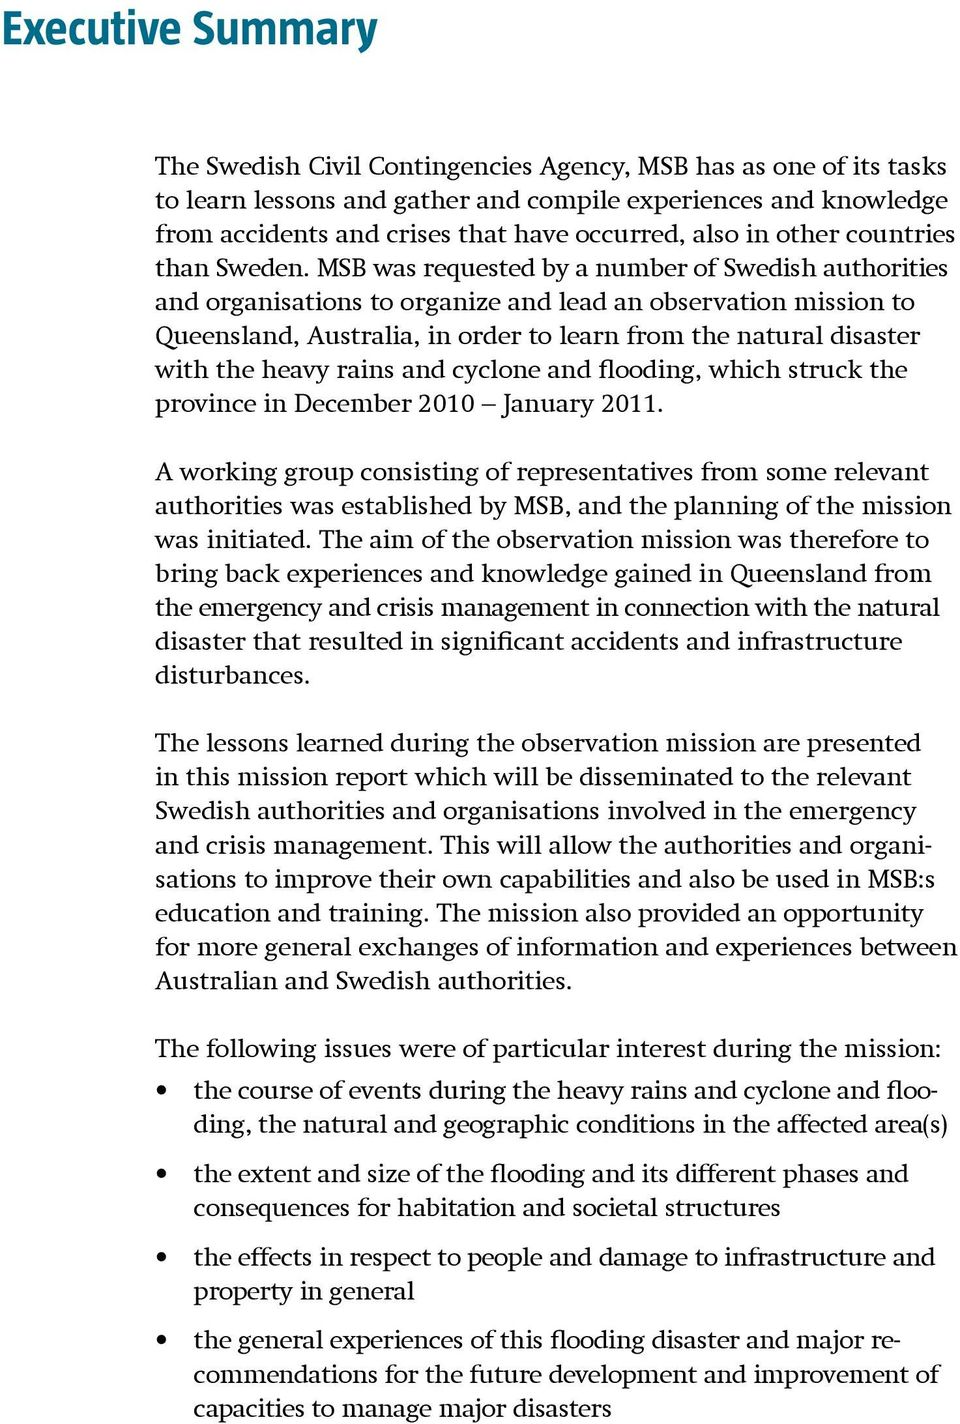 MSB was requested by a number of Swedish authorities and organisations to organize and lead an observation mission to Queensland, Australia, in order to learn from the natural disaster with the heavy